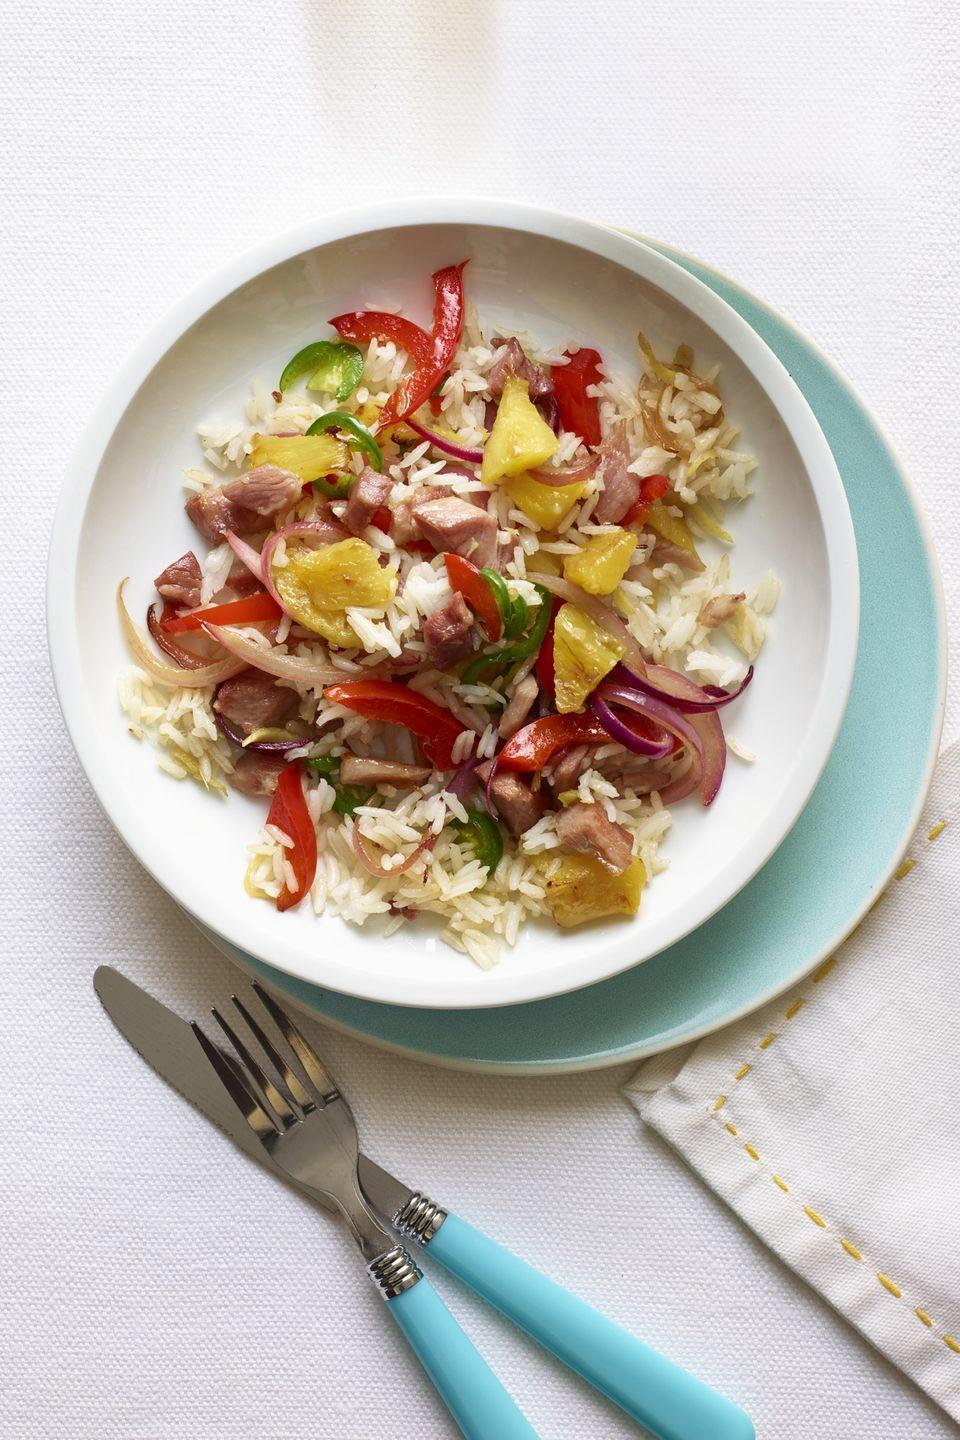 "<p>Pineapple and ham are the unlikeliest pair, but this delicious recipe is packed with 12 g of protein. </p><p><a href=""https://www.womansday.com/food-recipes/food-drinks/recipes/a12369/pineapple-ham-fried-rice-recipe-wdy0414/"" rel=""nofollow noopener"" target=""_blank"" data-ylk=""slk:Get the Pineapple and Ham Fried Rice recipe."" class=""link rapid-noclick-resp""><em><strong>Get the Pineapple and Ham Fried Rice recipe.</strong></em></a></p><p><strong><a class=""link rapid-noclick-resp"" href=""https://www.amazon.com/dp/B00FLYWNYQ/?tag=syn-yahoo-20&ascsubtag=%5Bartid%7C10070.g.2176%5Bsrc%7Cyahoo-us"" rel=""nofollow noopener"" target=""_blank"" data-ylk=""slk:SHOP INSTANT POTS"">SHOP INSTANT POTS</a></strong></p>"